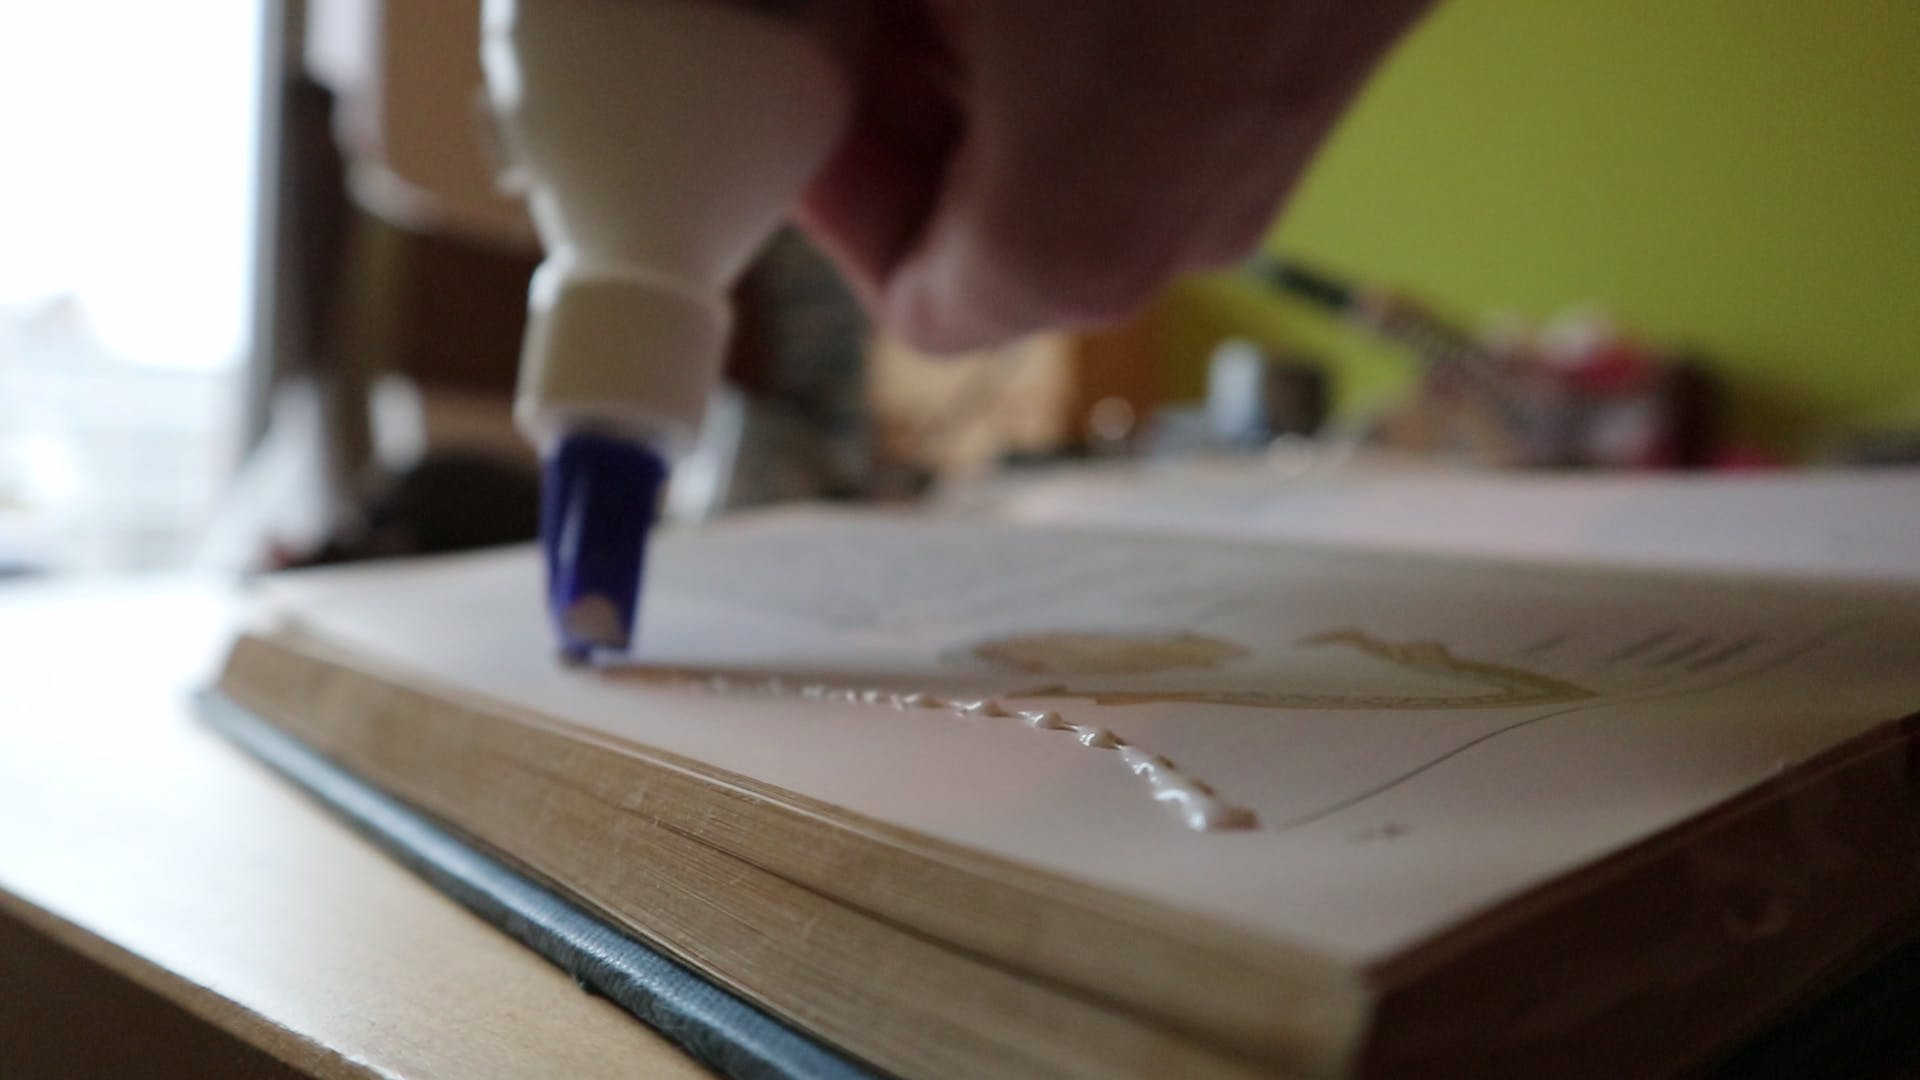 Gluing pages together